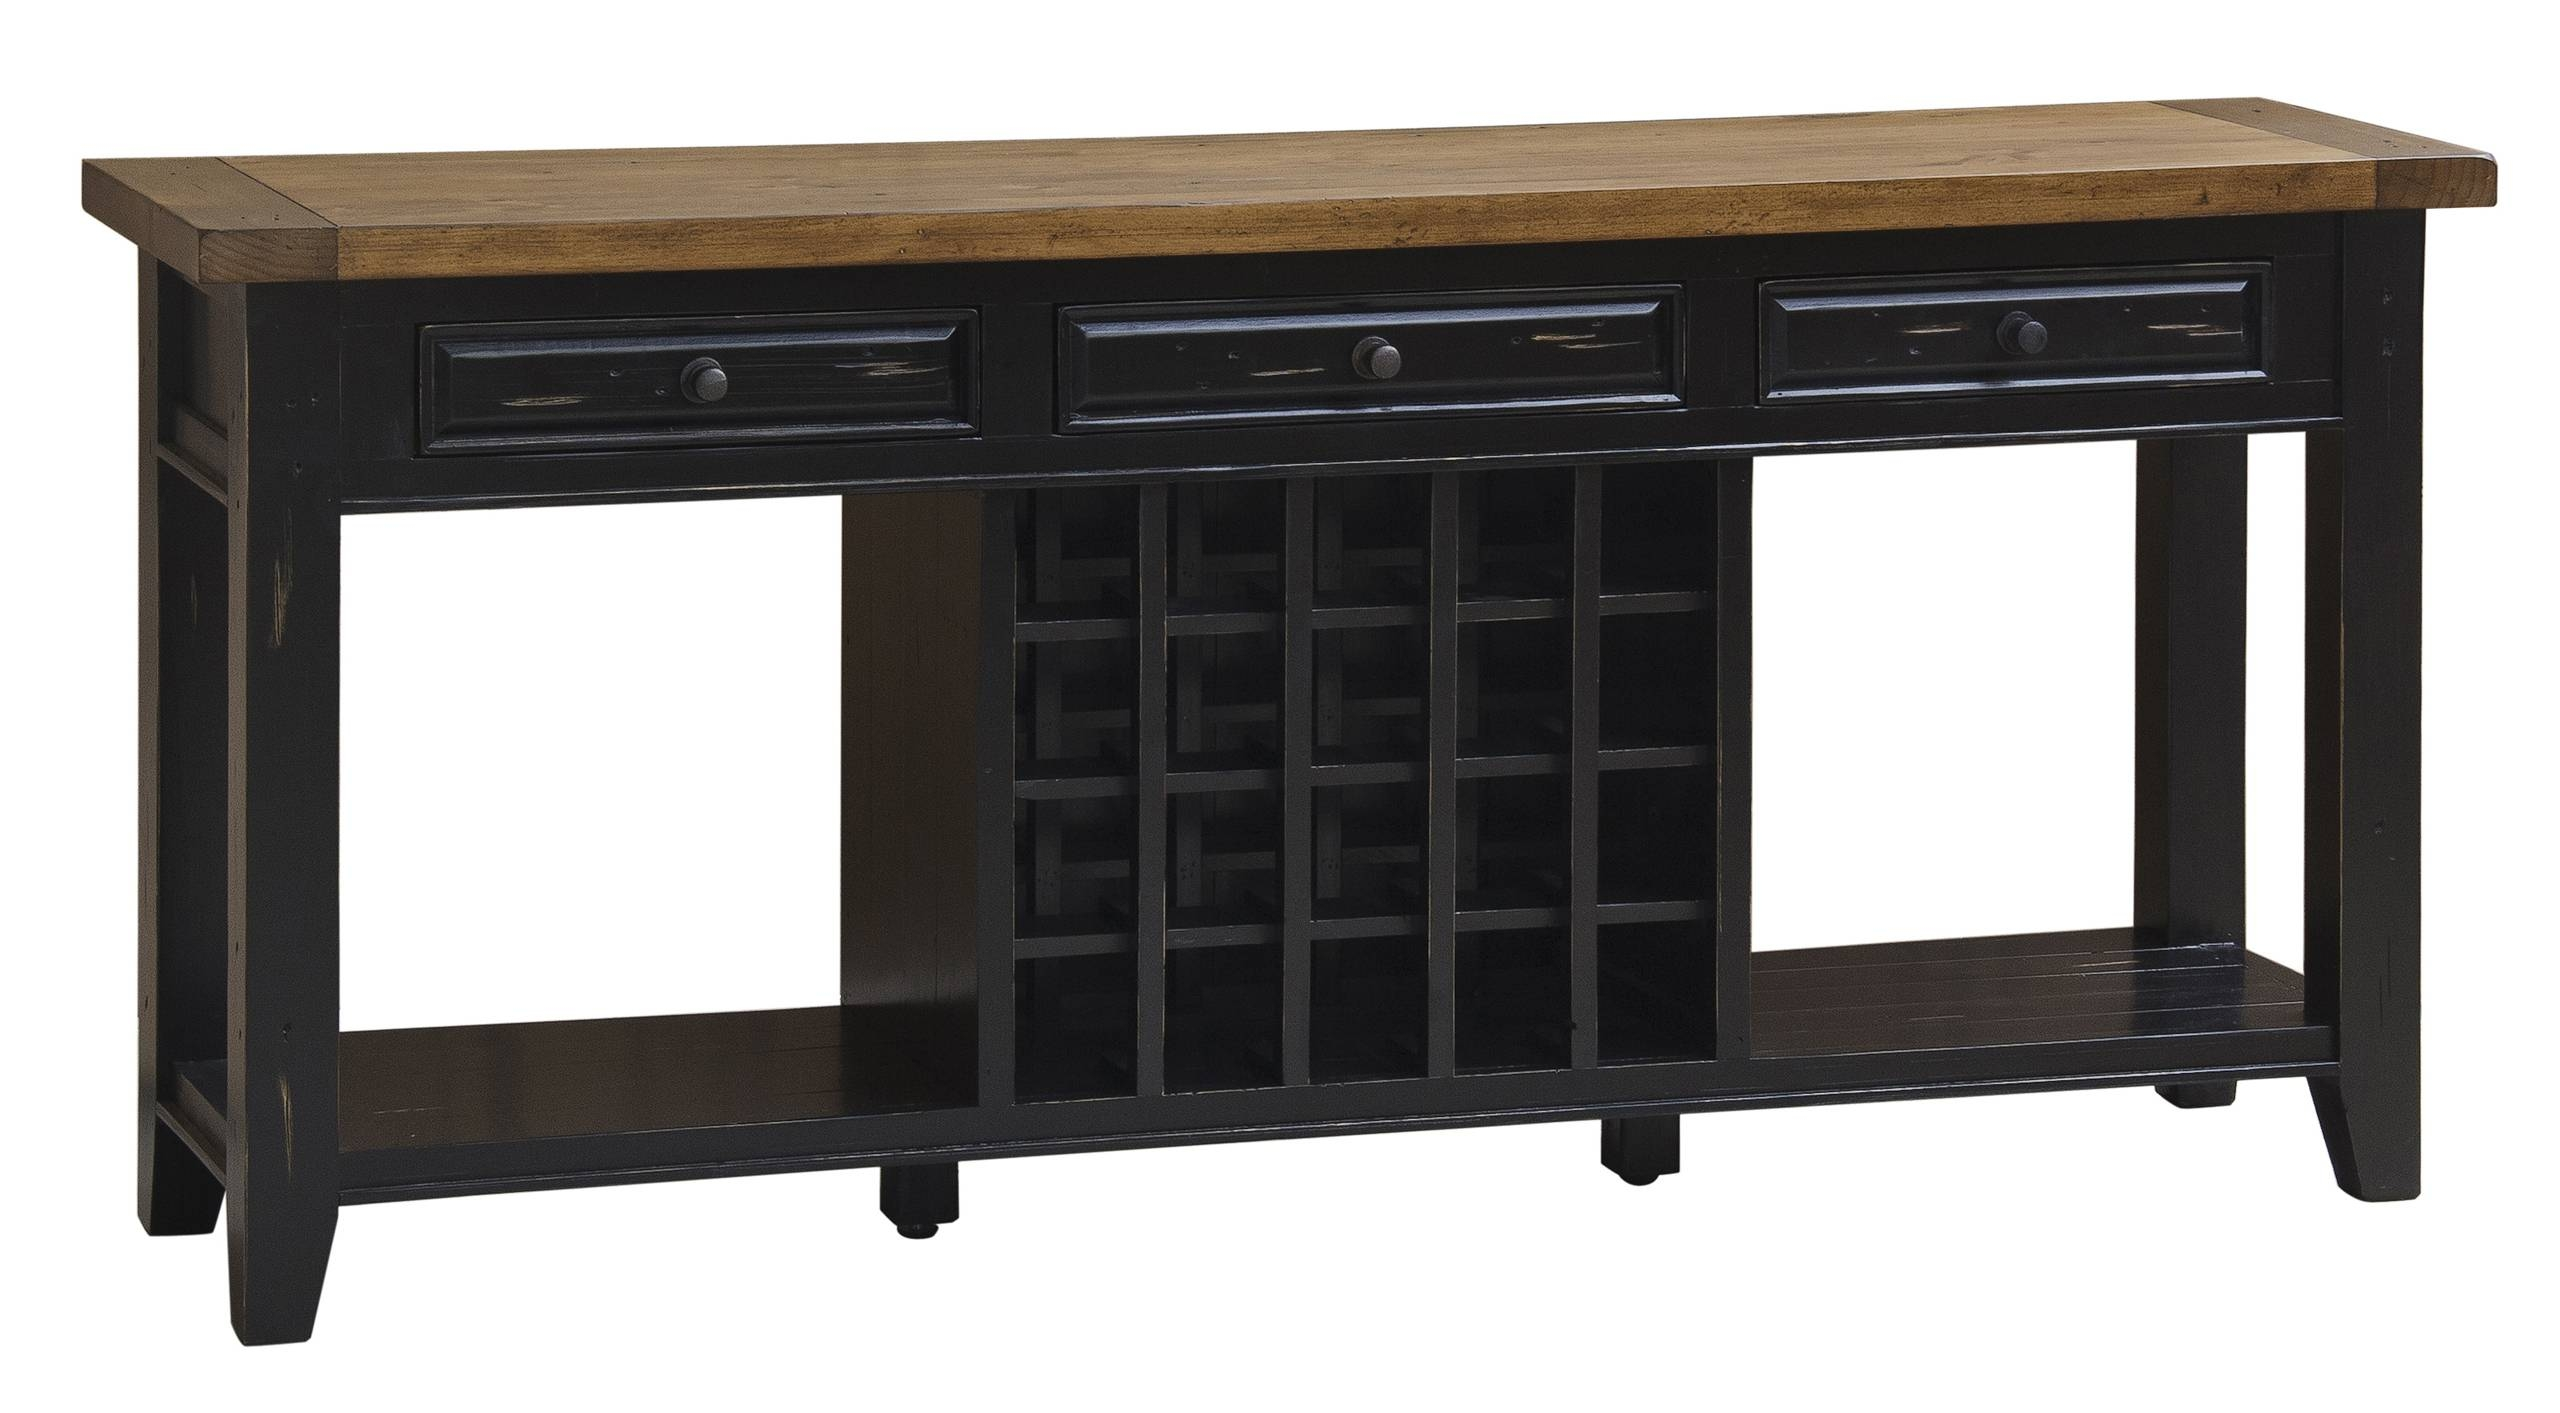 Hillsdale Tuscan Retreat Sideboard throughout Amazon Furniture Sideboards (Image 14 of 30)